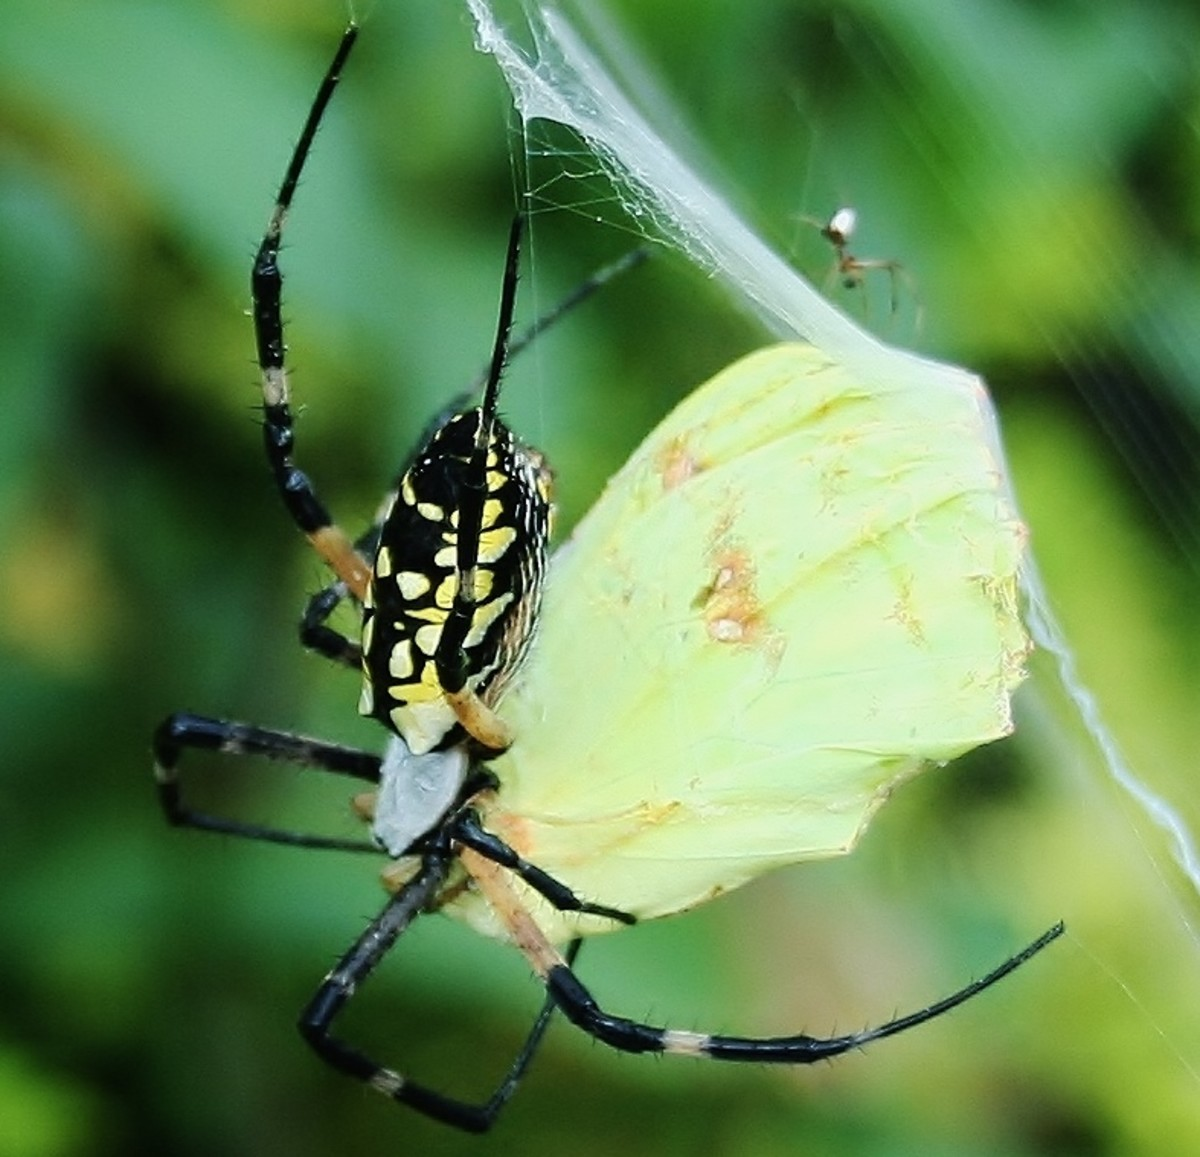 Is this a black footed yellow sac spider i found it in my apartment - Is This A Black Footed Yellow Sac Spider I Found It In My Apartment 40